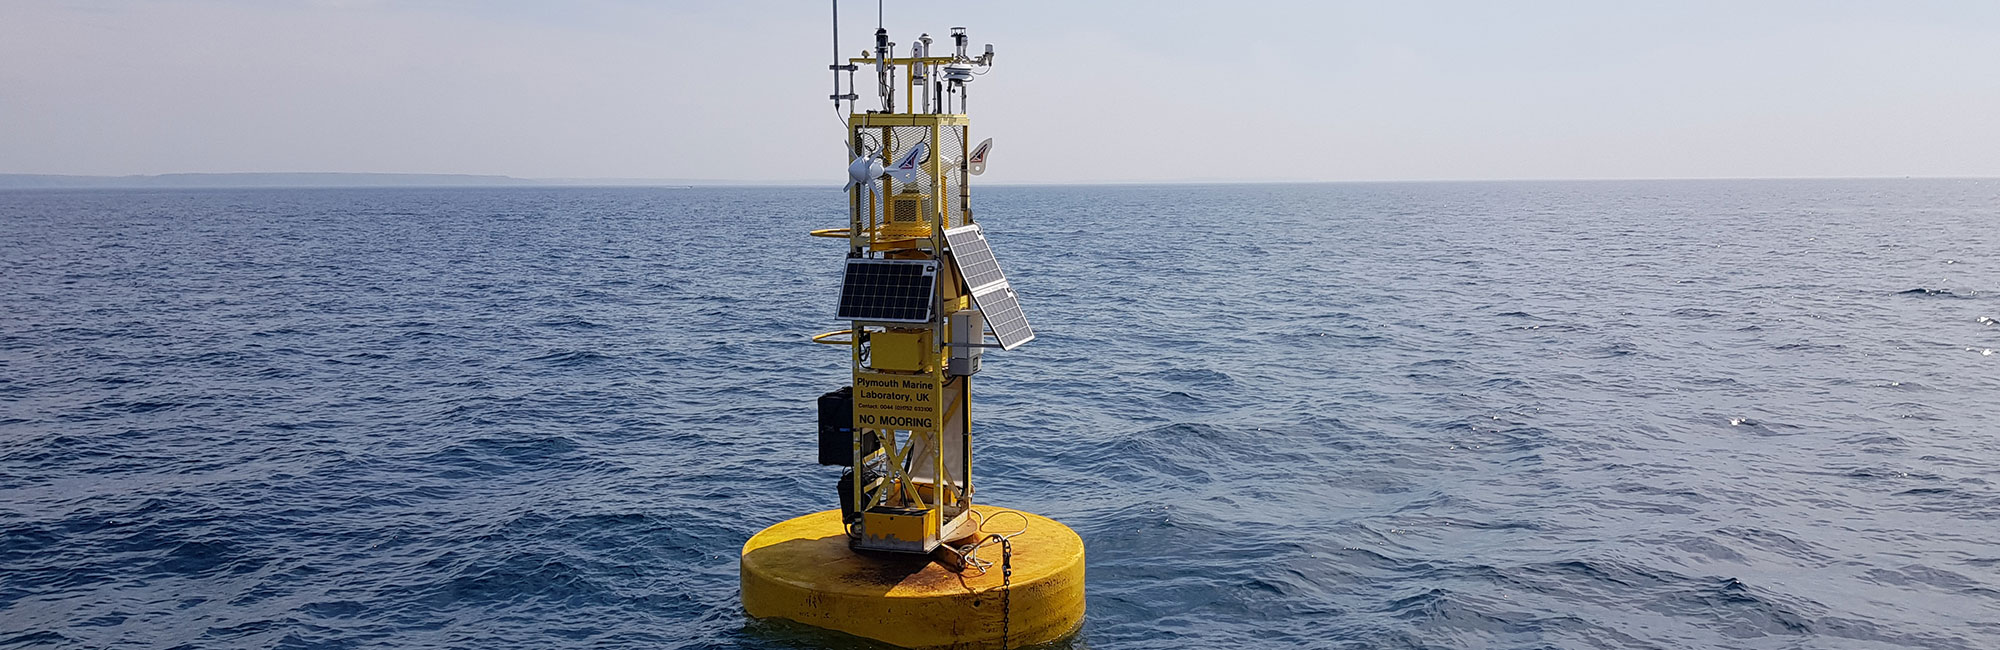 Picture of a yellow scientific data buoy at sea